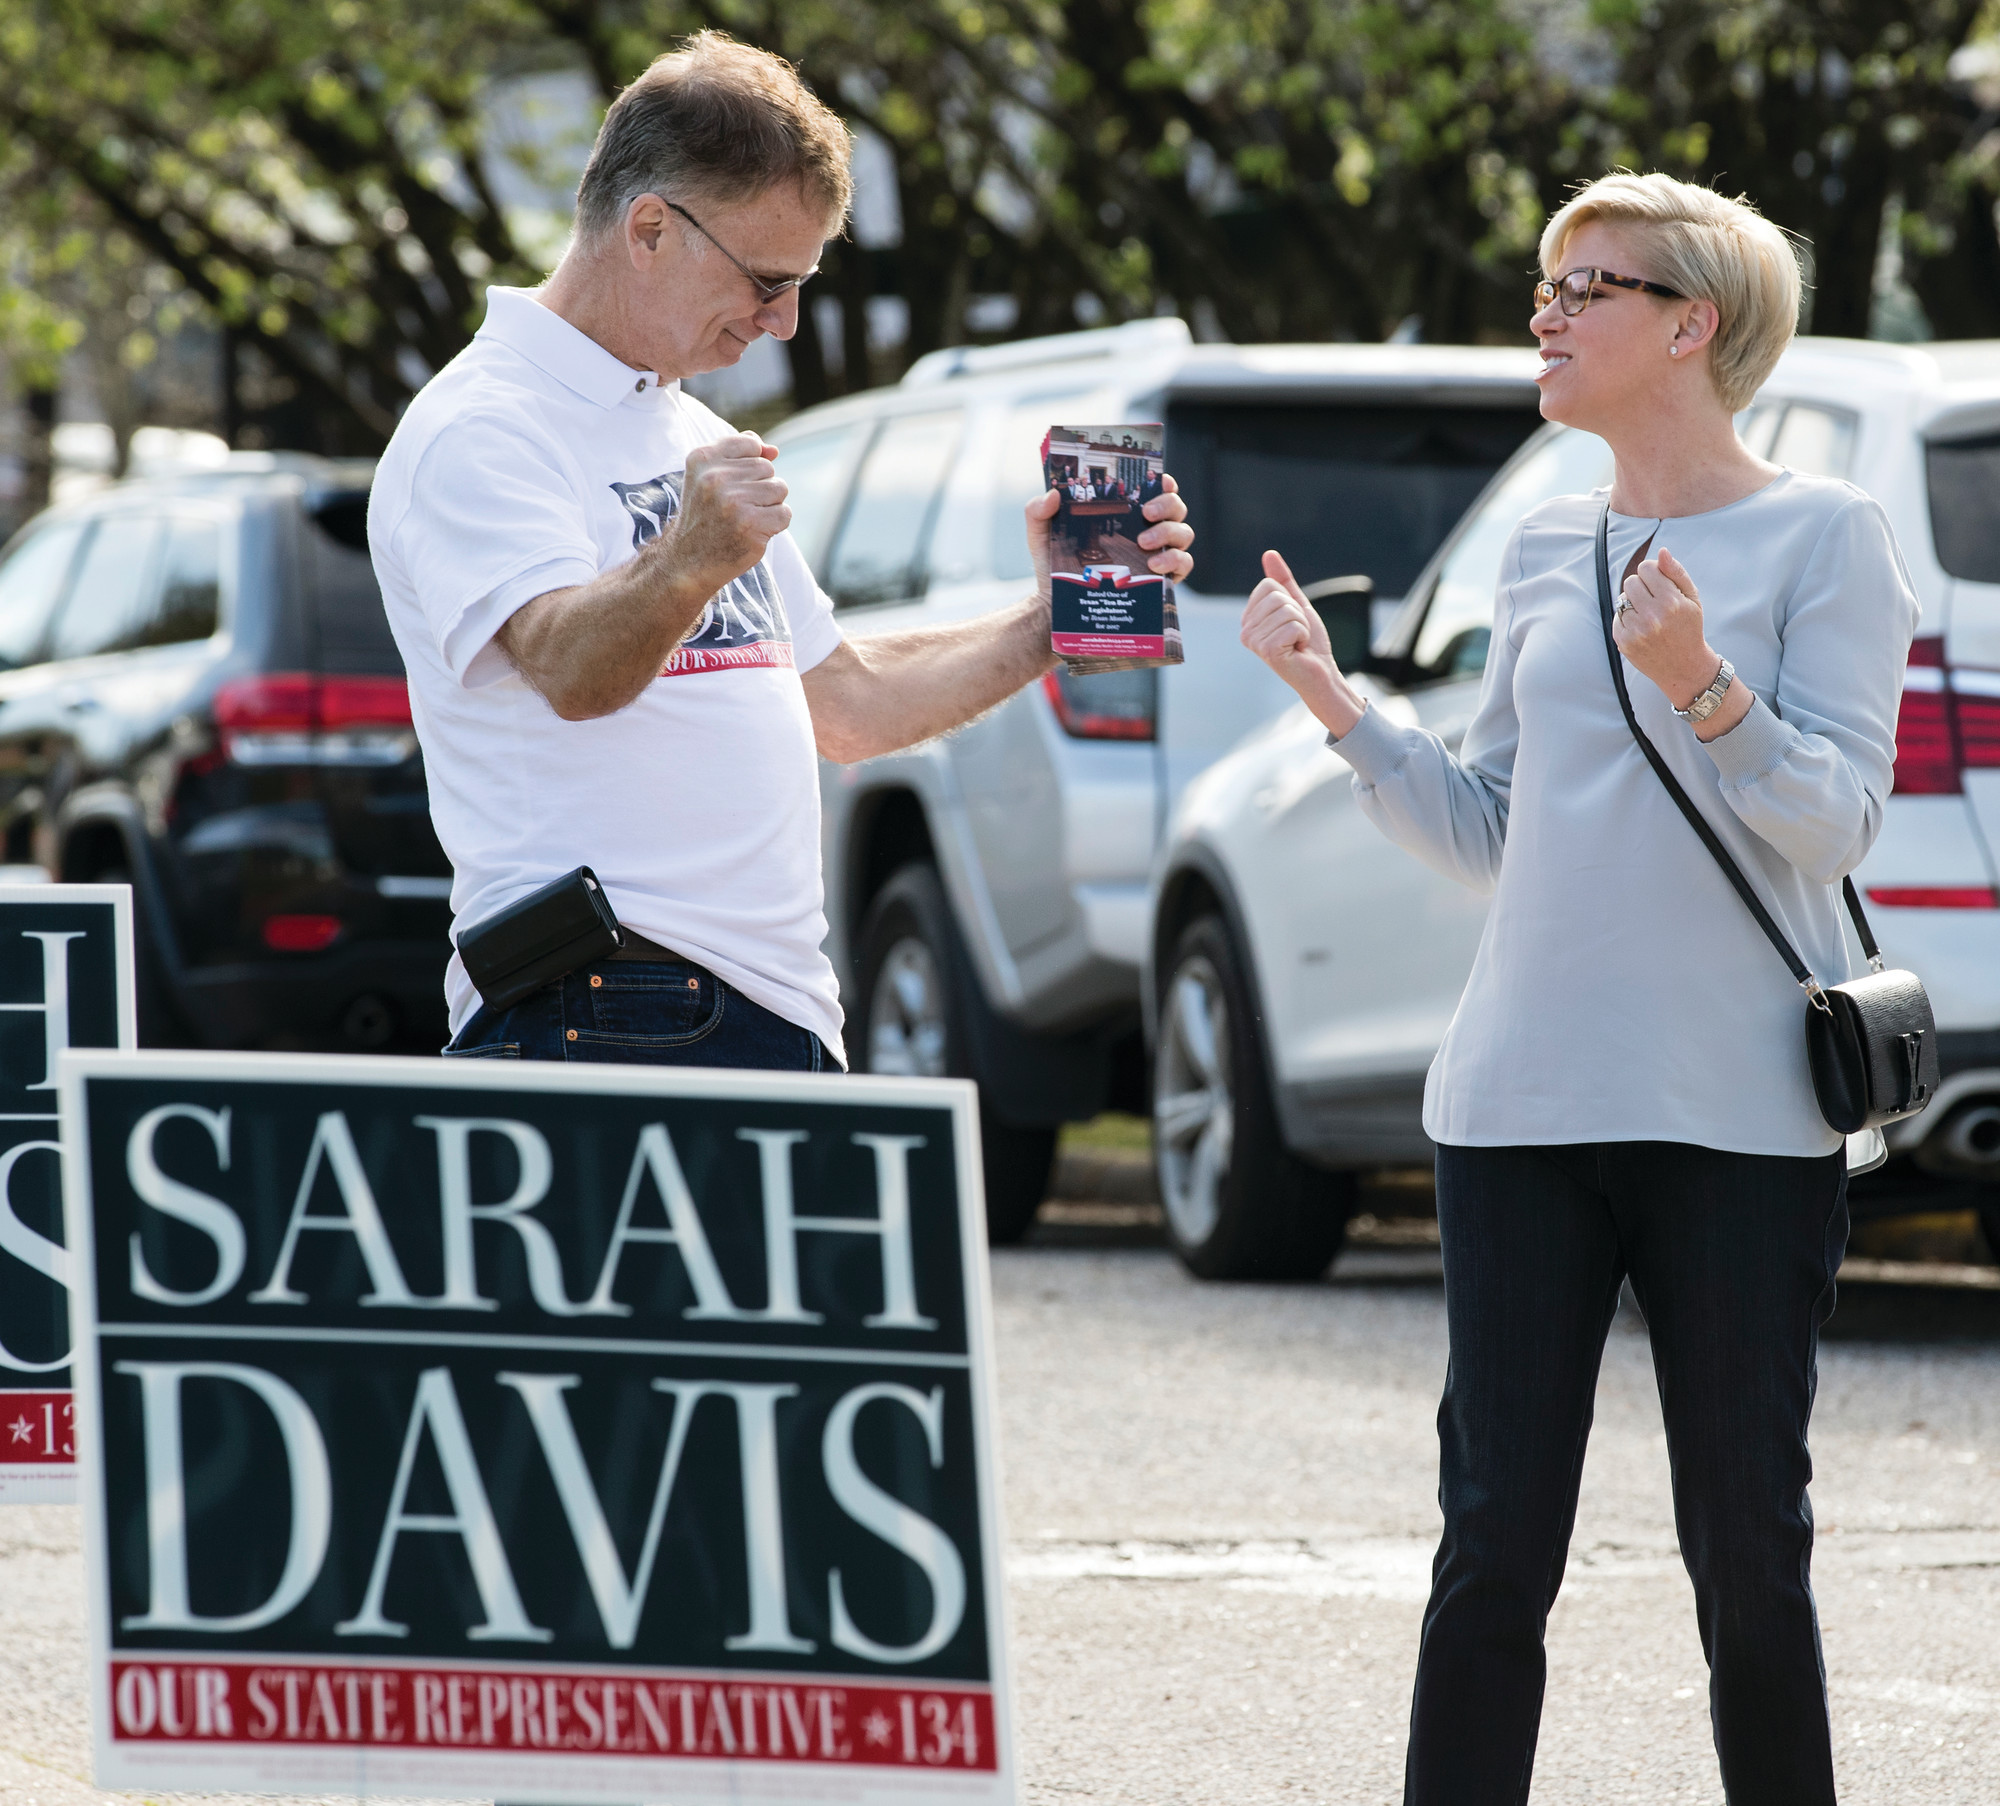 State Rep. Sarah Davis, R-Houston, speaks to campaign volunteer Michael Sternesky before voting in the primary election outside the polling place at West University Elementary School on Tuesday in Houston. Davis was running for re-election in the Texas House of Representatives, District 134.